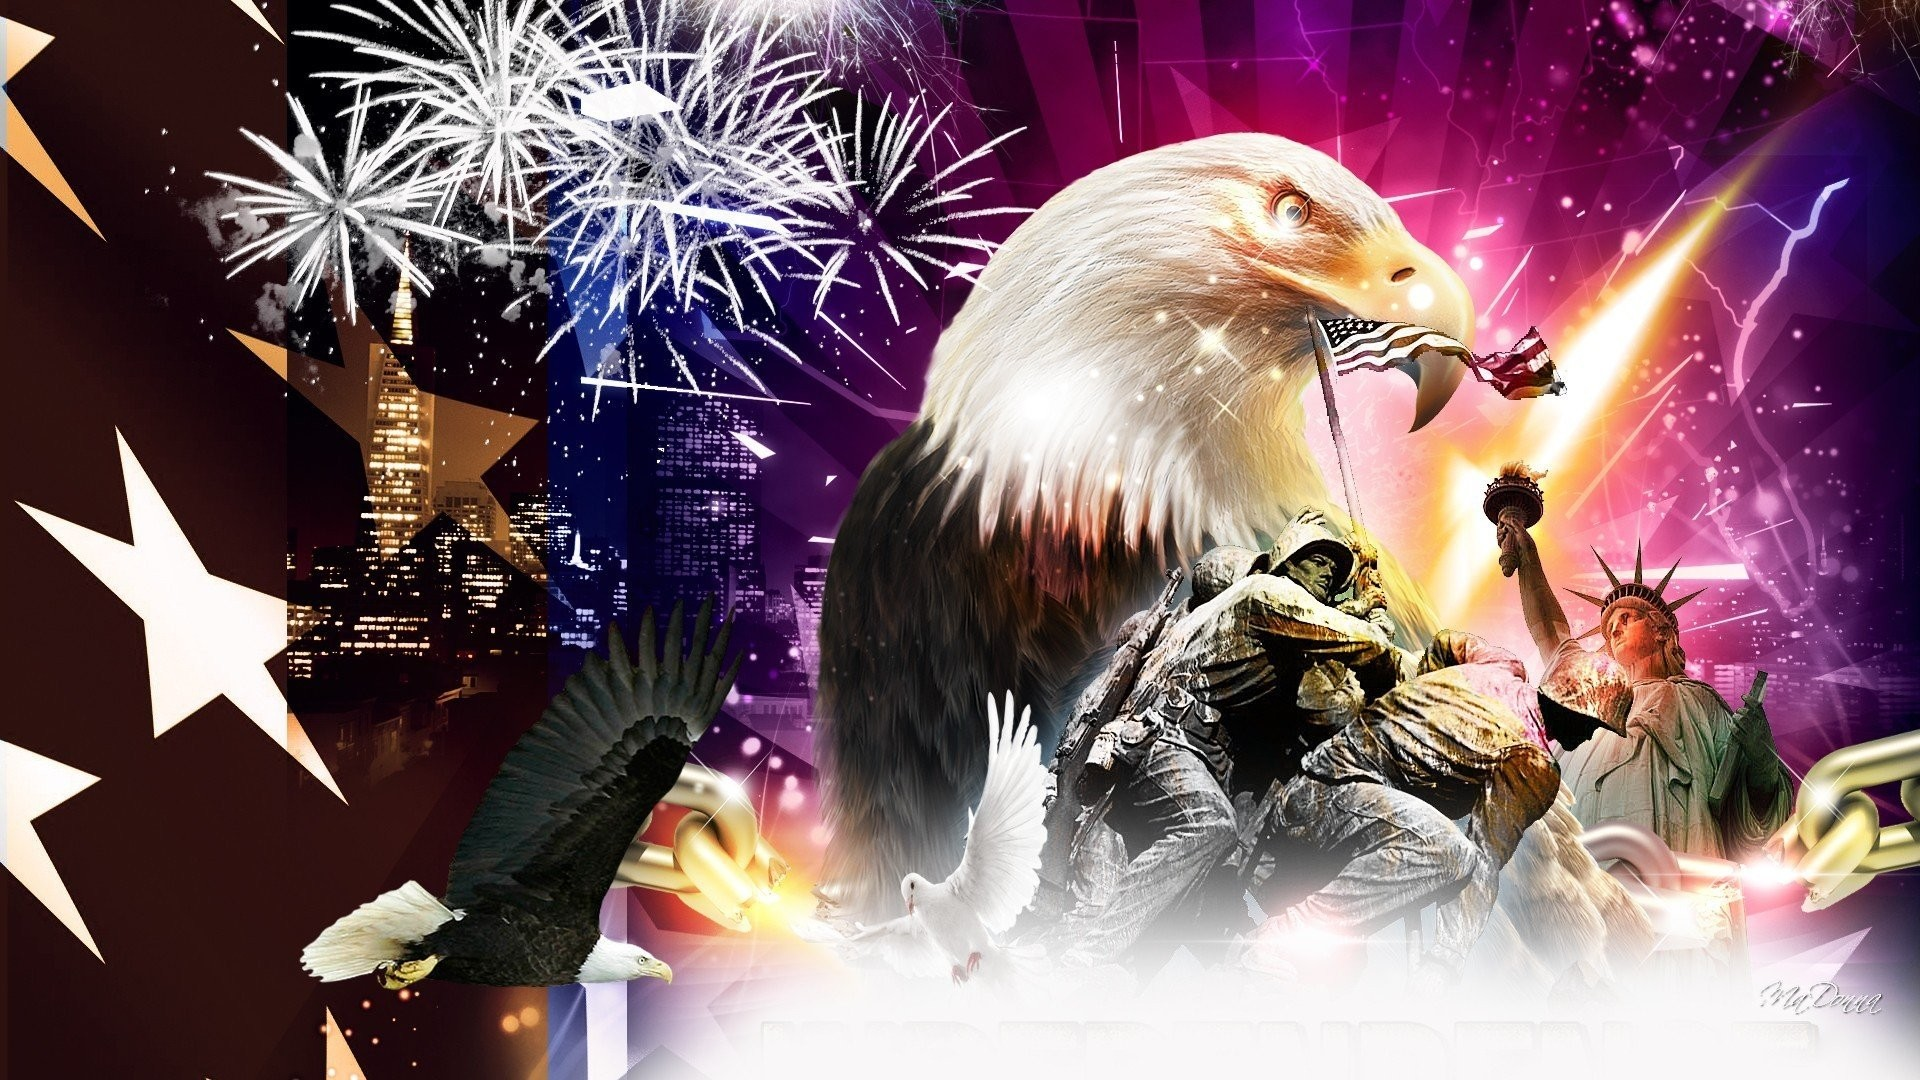 1920x1080 4th july fireworks eagle mood america usa wallpaper |  | 421613 |  WallpaperUP